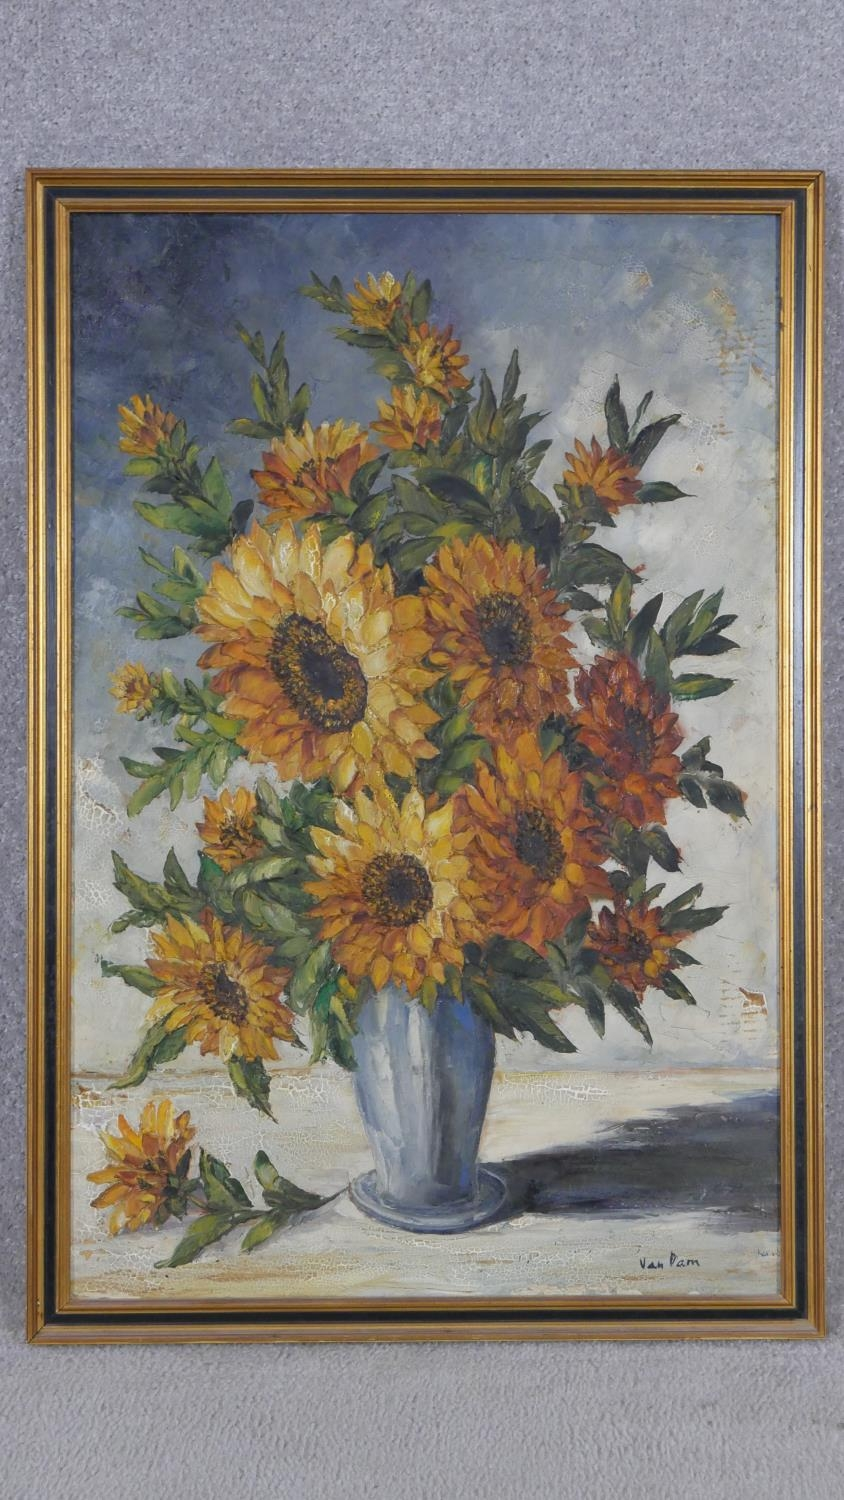 A framed oil on canvas, sunflowers in a vase, signed Van Dam. H.81 W.55.5cm - Image 2 of 7